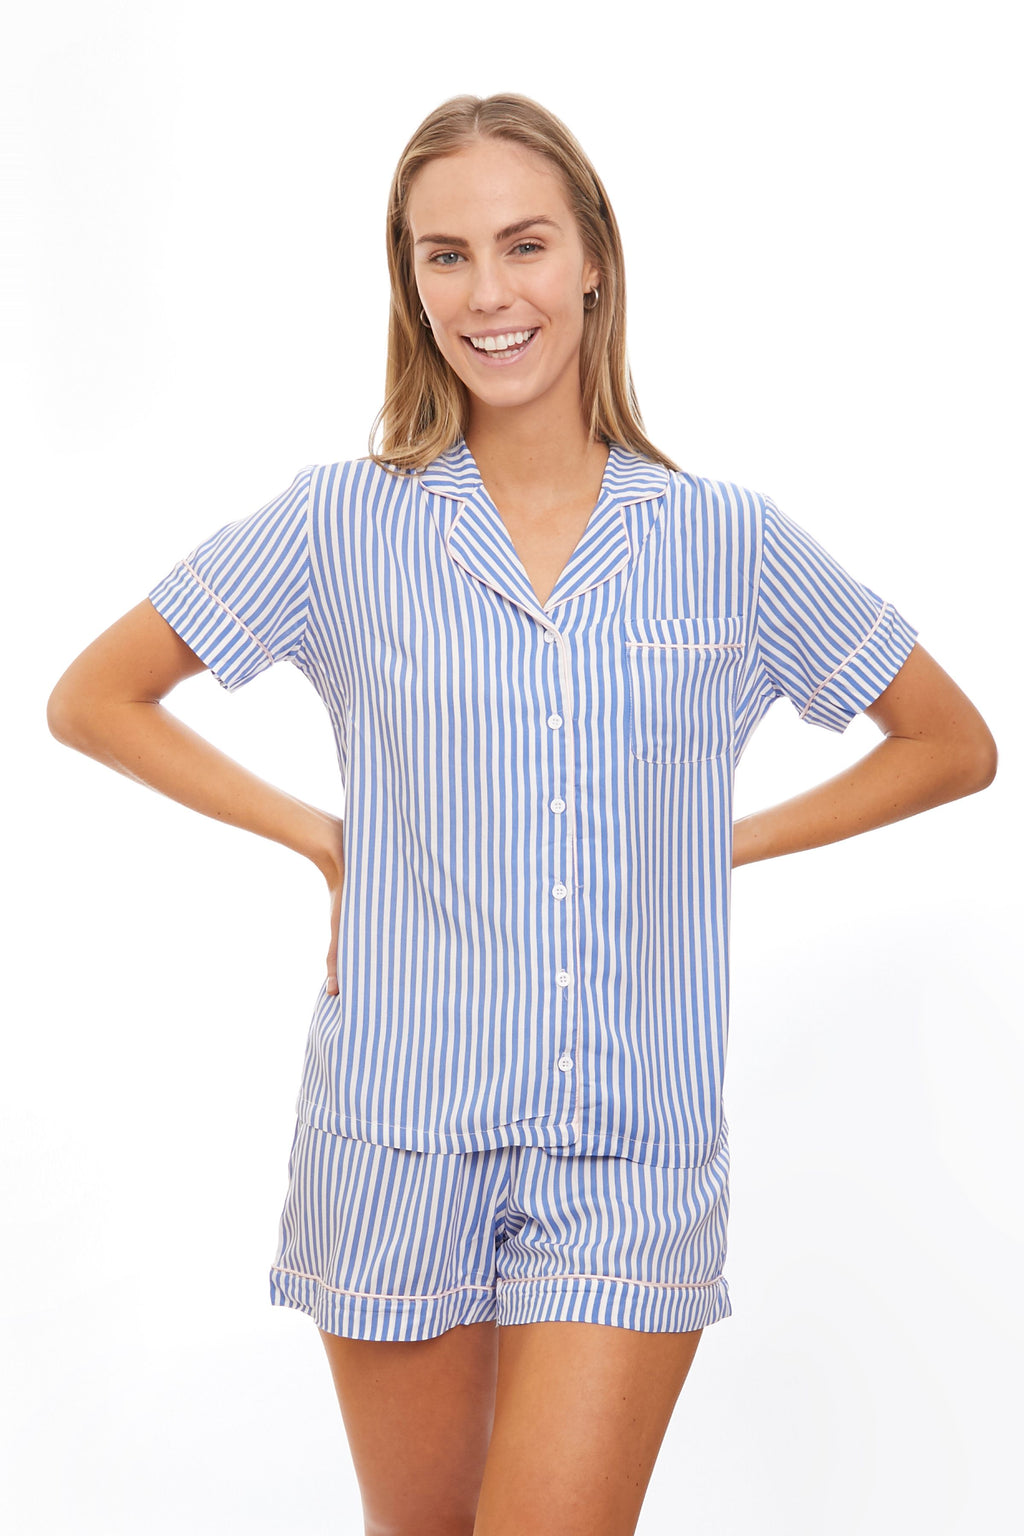 Classic Blue Stripe Pajama Short Set Women - The Hampton's